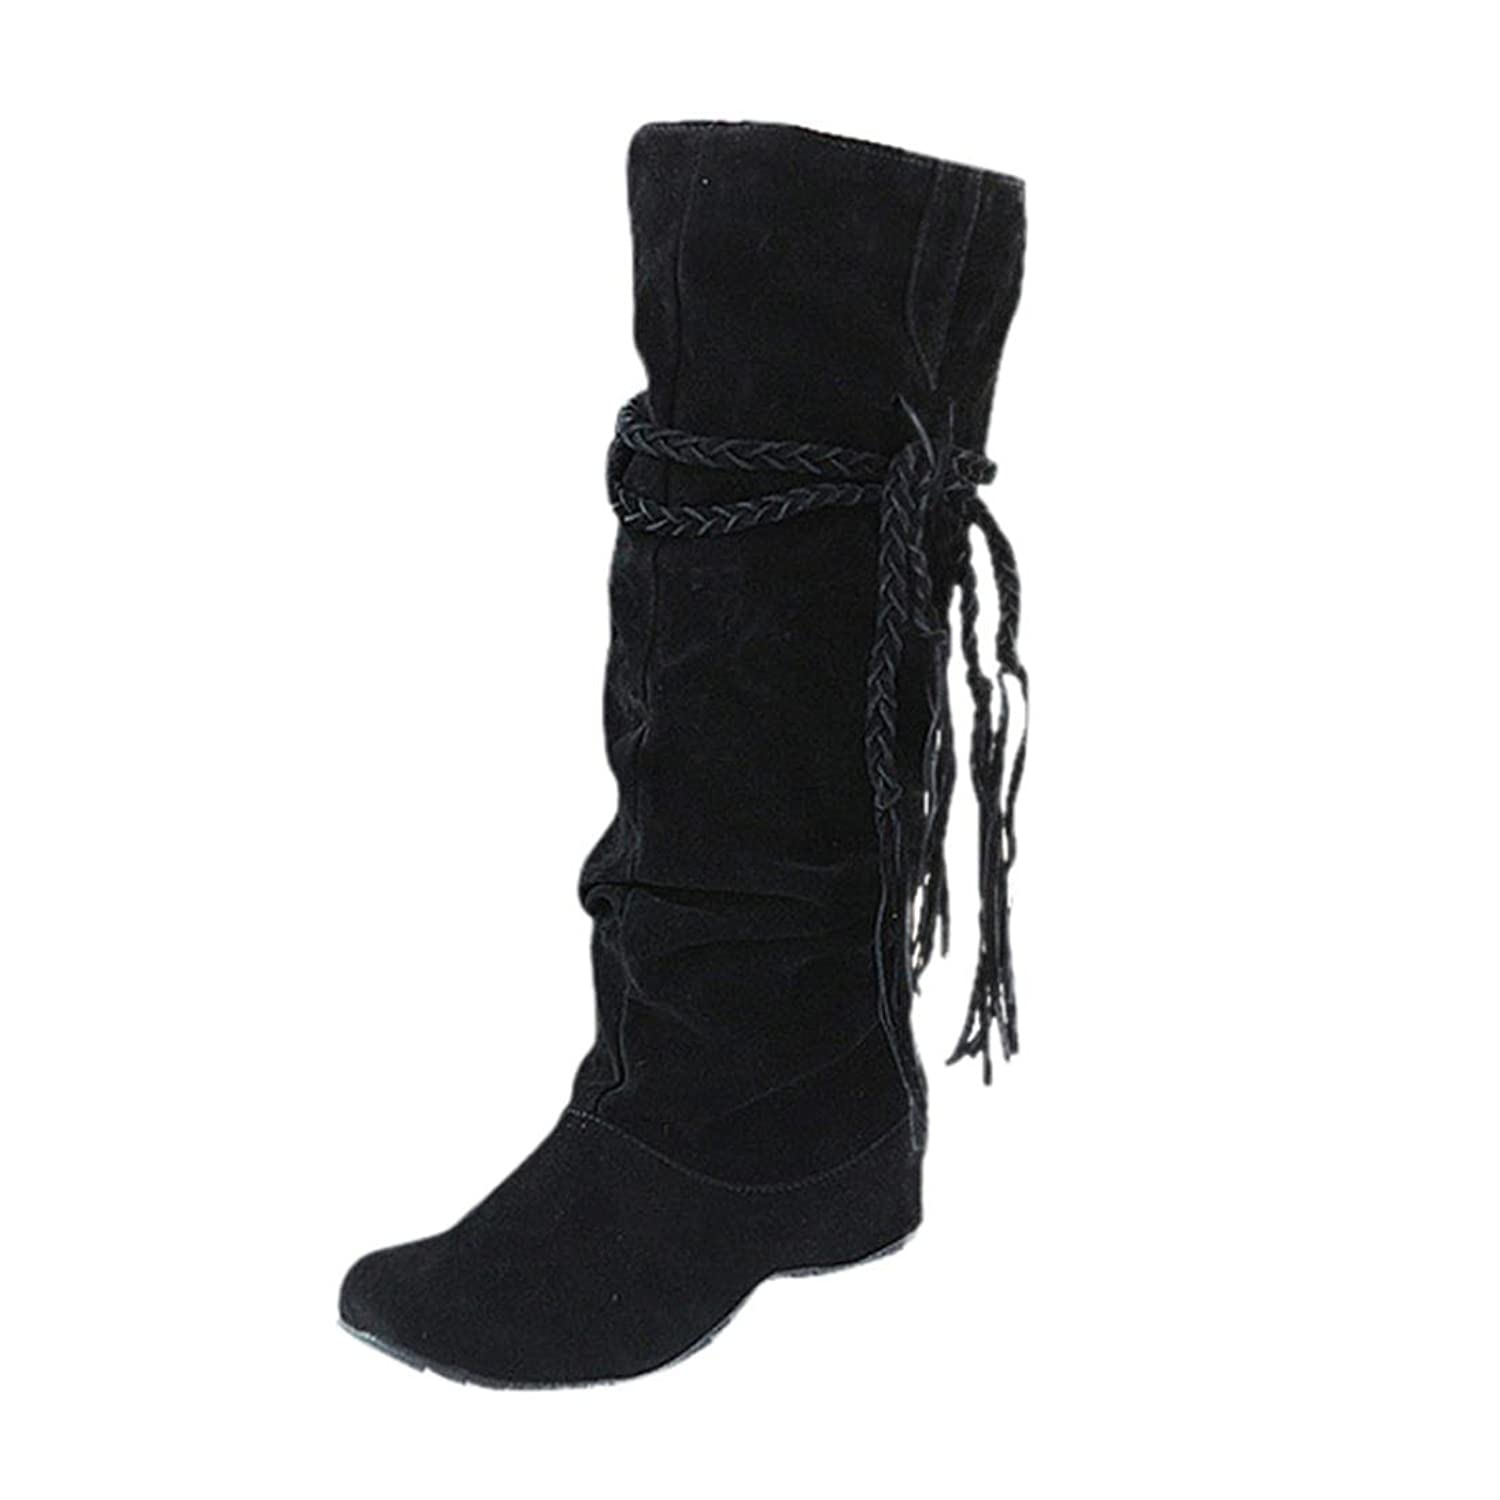 Amiley Hot Sale Women Heighten Platforms Thigh High Tessals Boots Motorcycle Outdoor Shoes